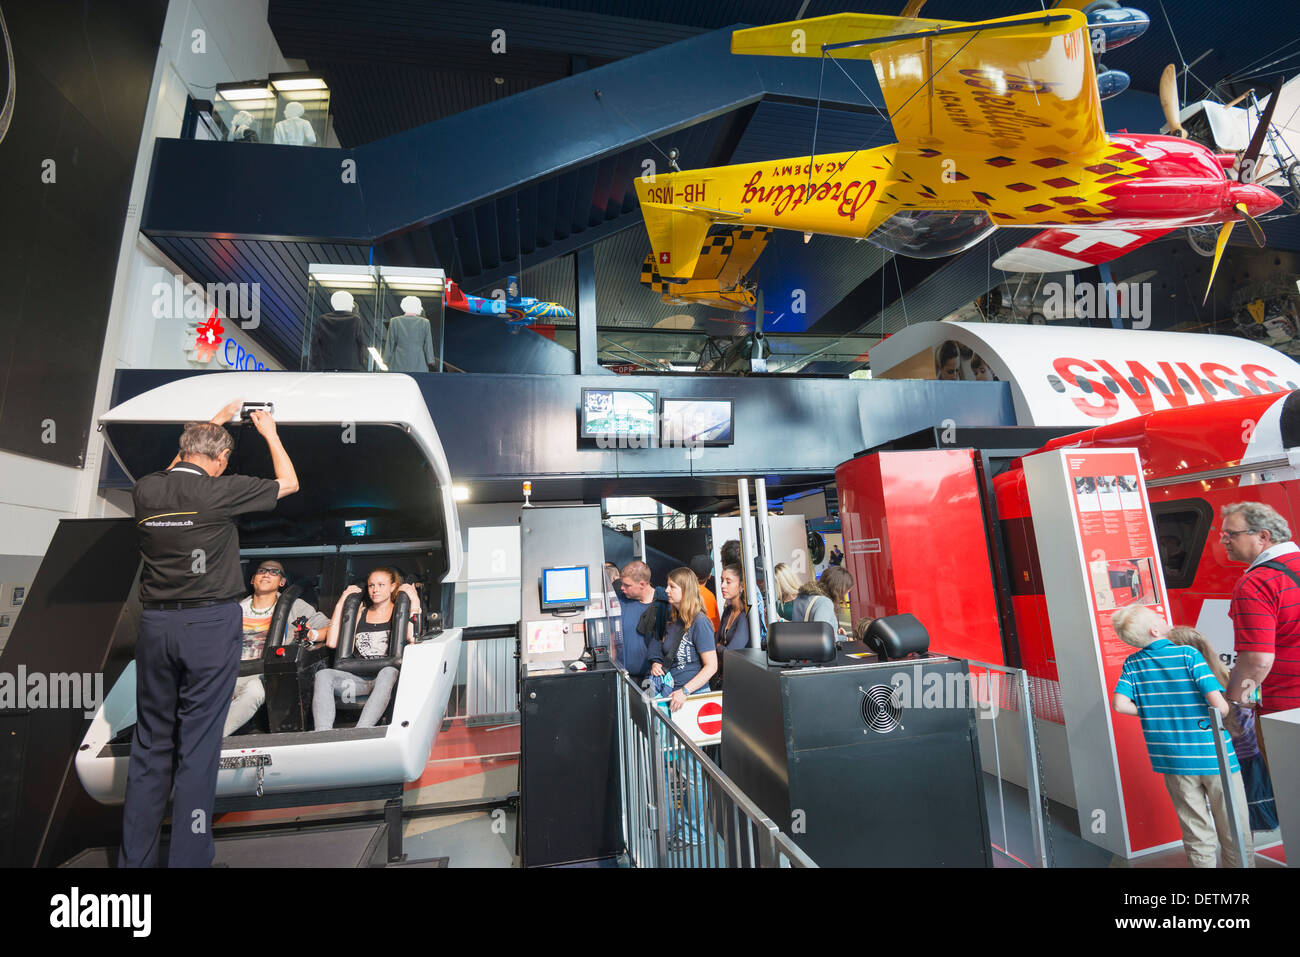 c2e2a830fce Flight Simulator Stock Photos   Flight Simulator Stock Images - Alamy